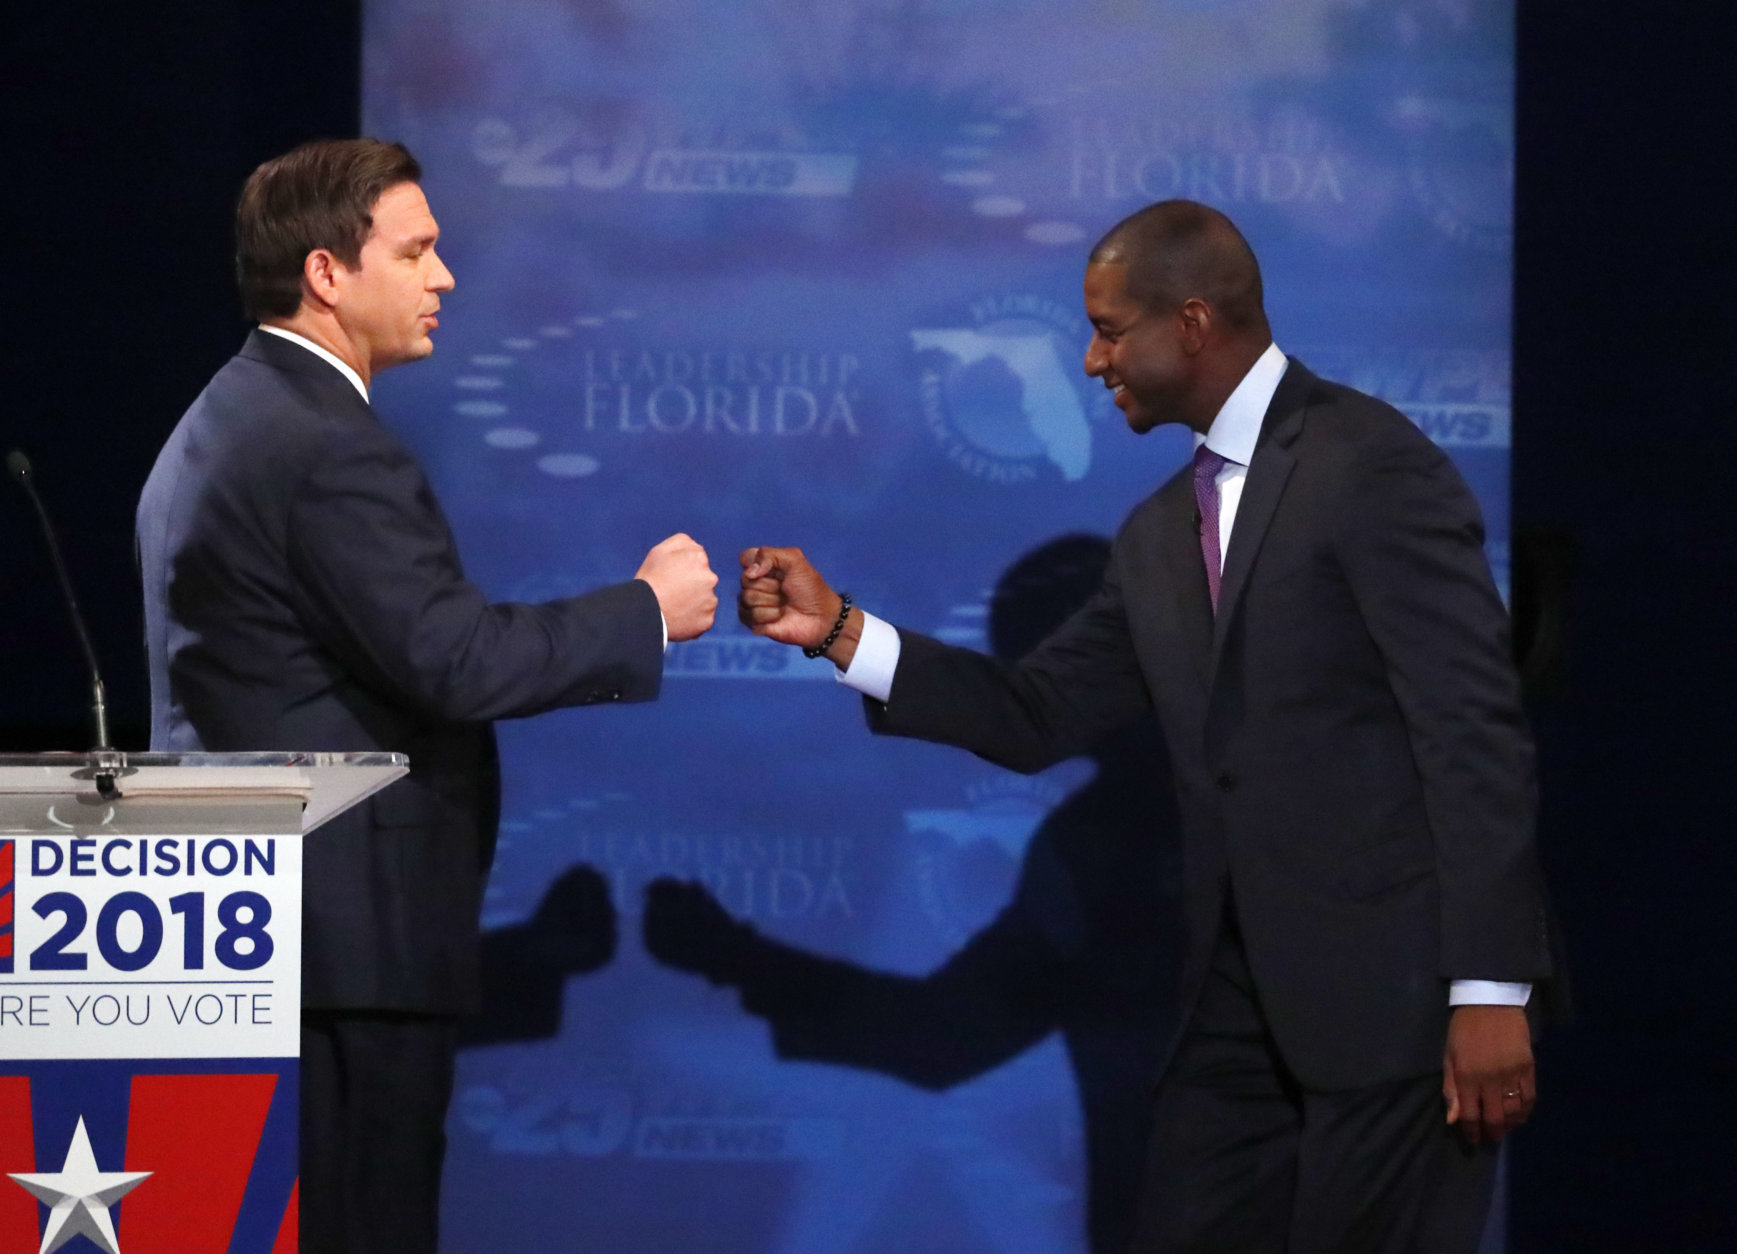 IN this Oct. 24, 2018, photo, Florida gubernatorial candidates, Republican Ron DeSantis, left, and Democrat Andrew Gillum fist bump after a debate at Broward College in Davie, Fla. The final stretch of the midterm campaign is increasingly dominated by debate over one of the most sensitive issues in American political culture: Race. In Florida, accusations of racism are playing a central role in the hotly-contested campaign for governor. DeSantis chafed at questions about his ties to supporters who have made inflammatory comments. (AP Photo/Wilfredo Lee, Pool)